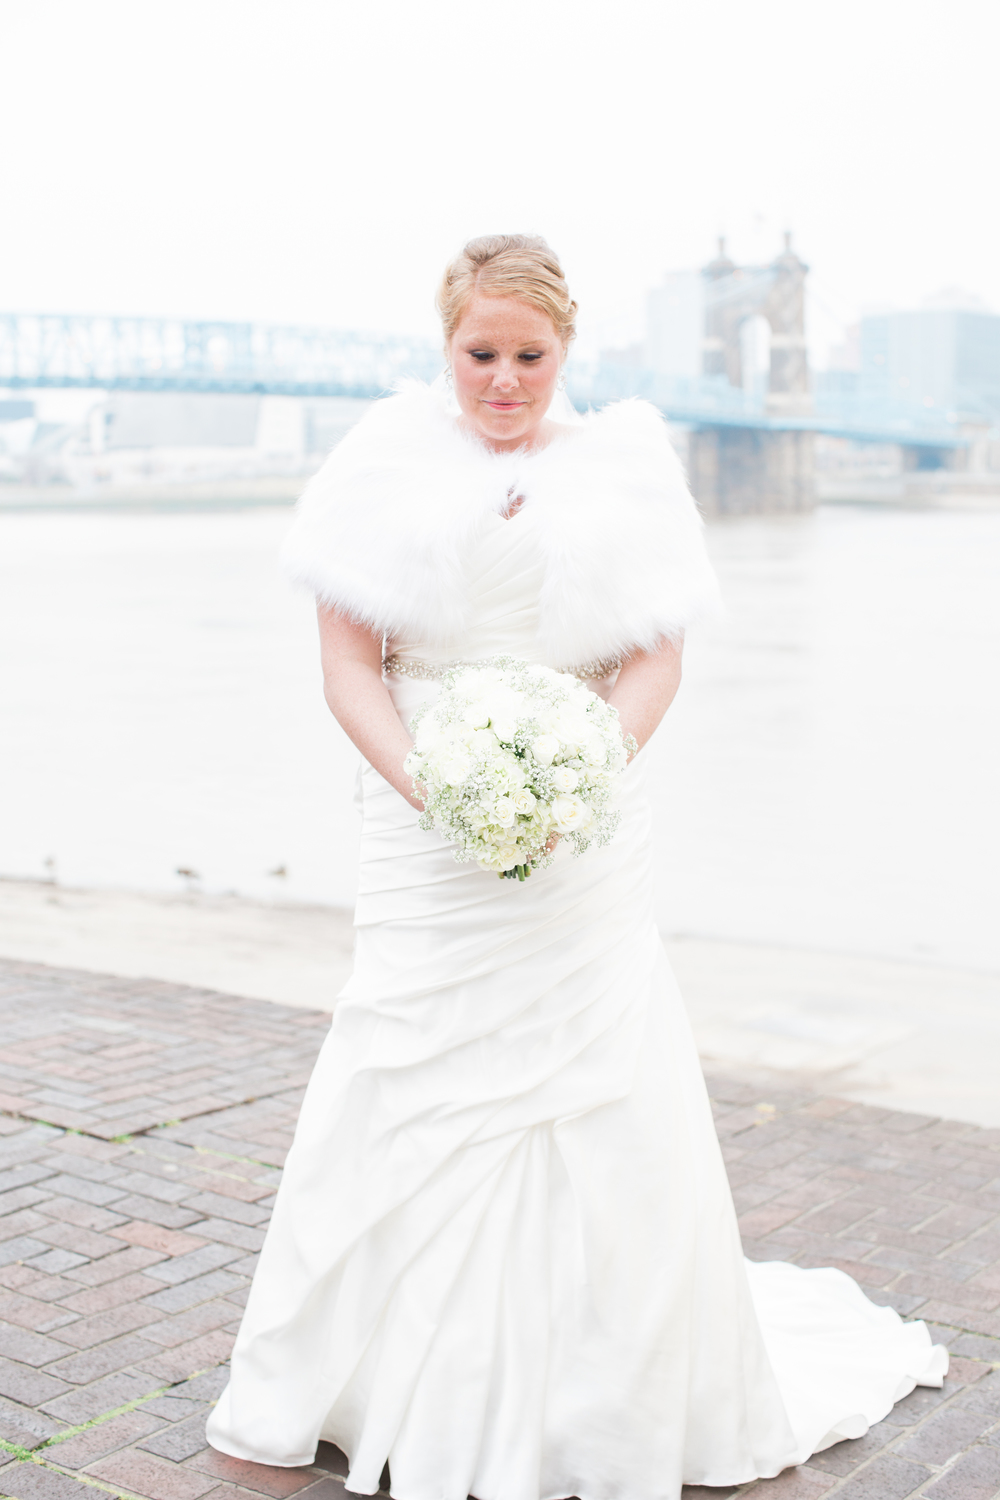 Bride at Riverside Drive Covington, Kentucky